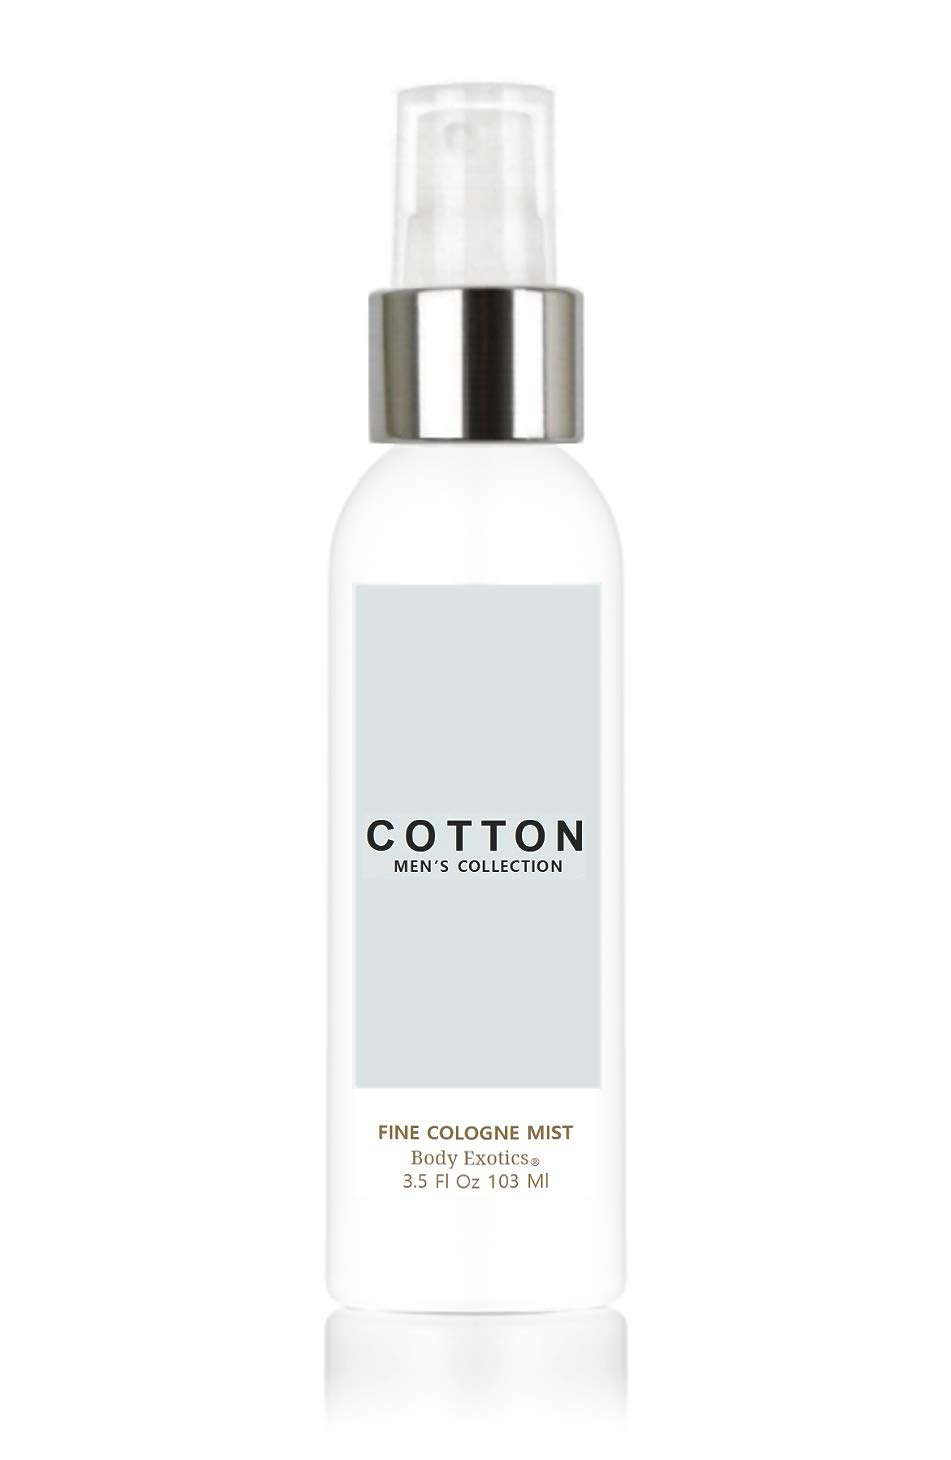 Cotton Men's Collection Fragrance Cologne Mist by Body Exotics 3.5 Fl Oz 103 Ml - the Nostalgic Aroma of Clean Cotton Dried on a Fresh Breezy Day